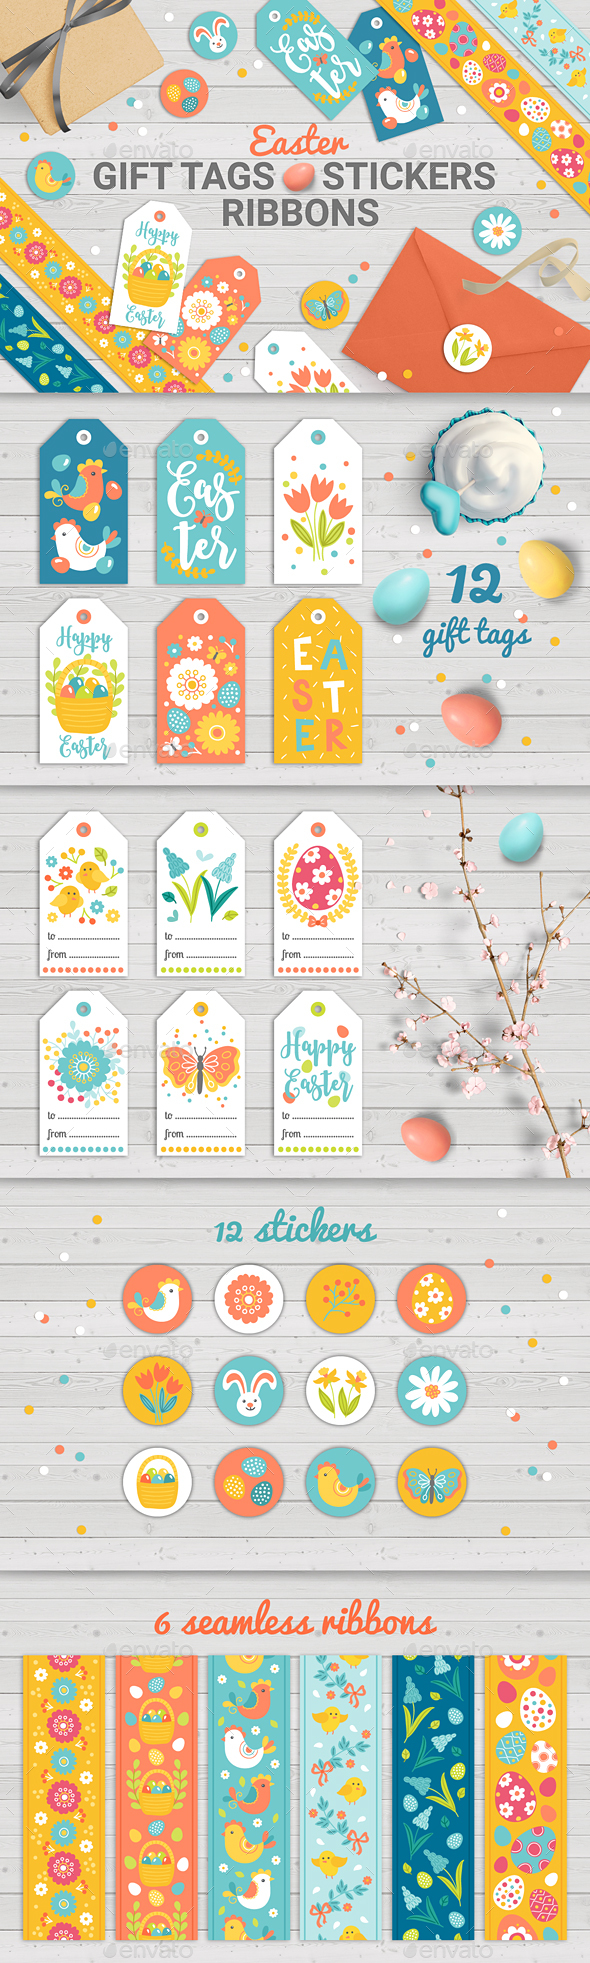 Easter Gift Tags with Sticker and, Tapes - Miscellaneous Seasons/Holidays